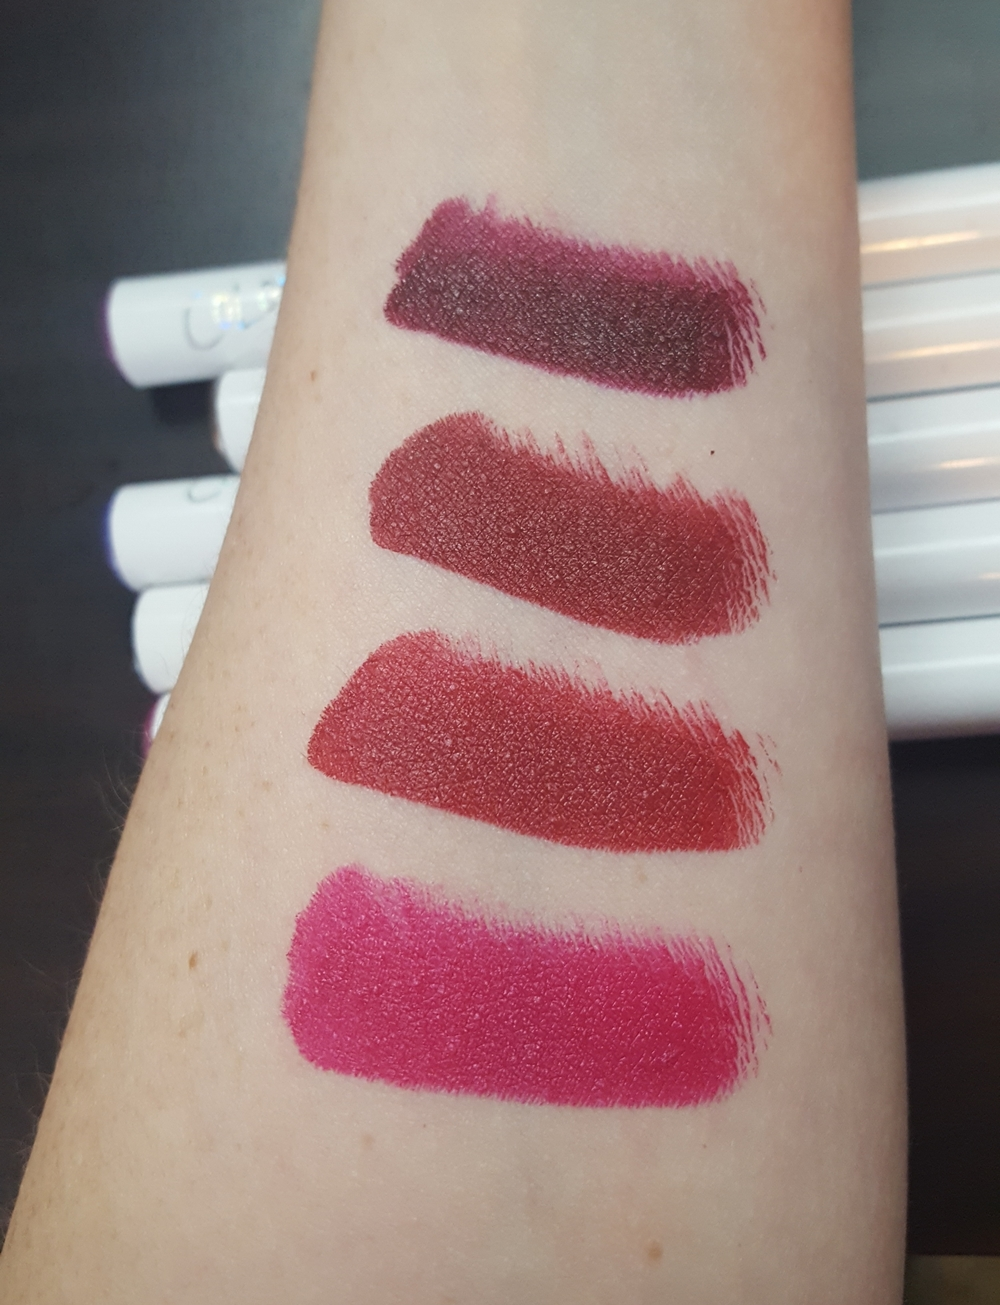 From top to bottom: Creature, Poison, TGIF, Out of Sync